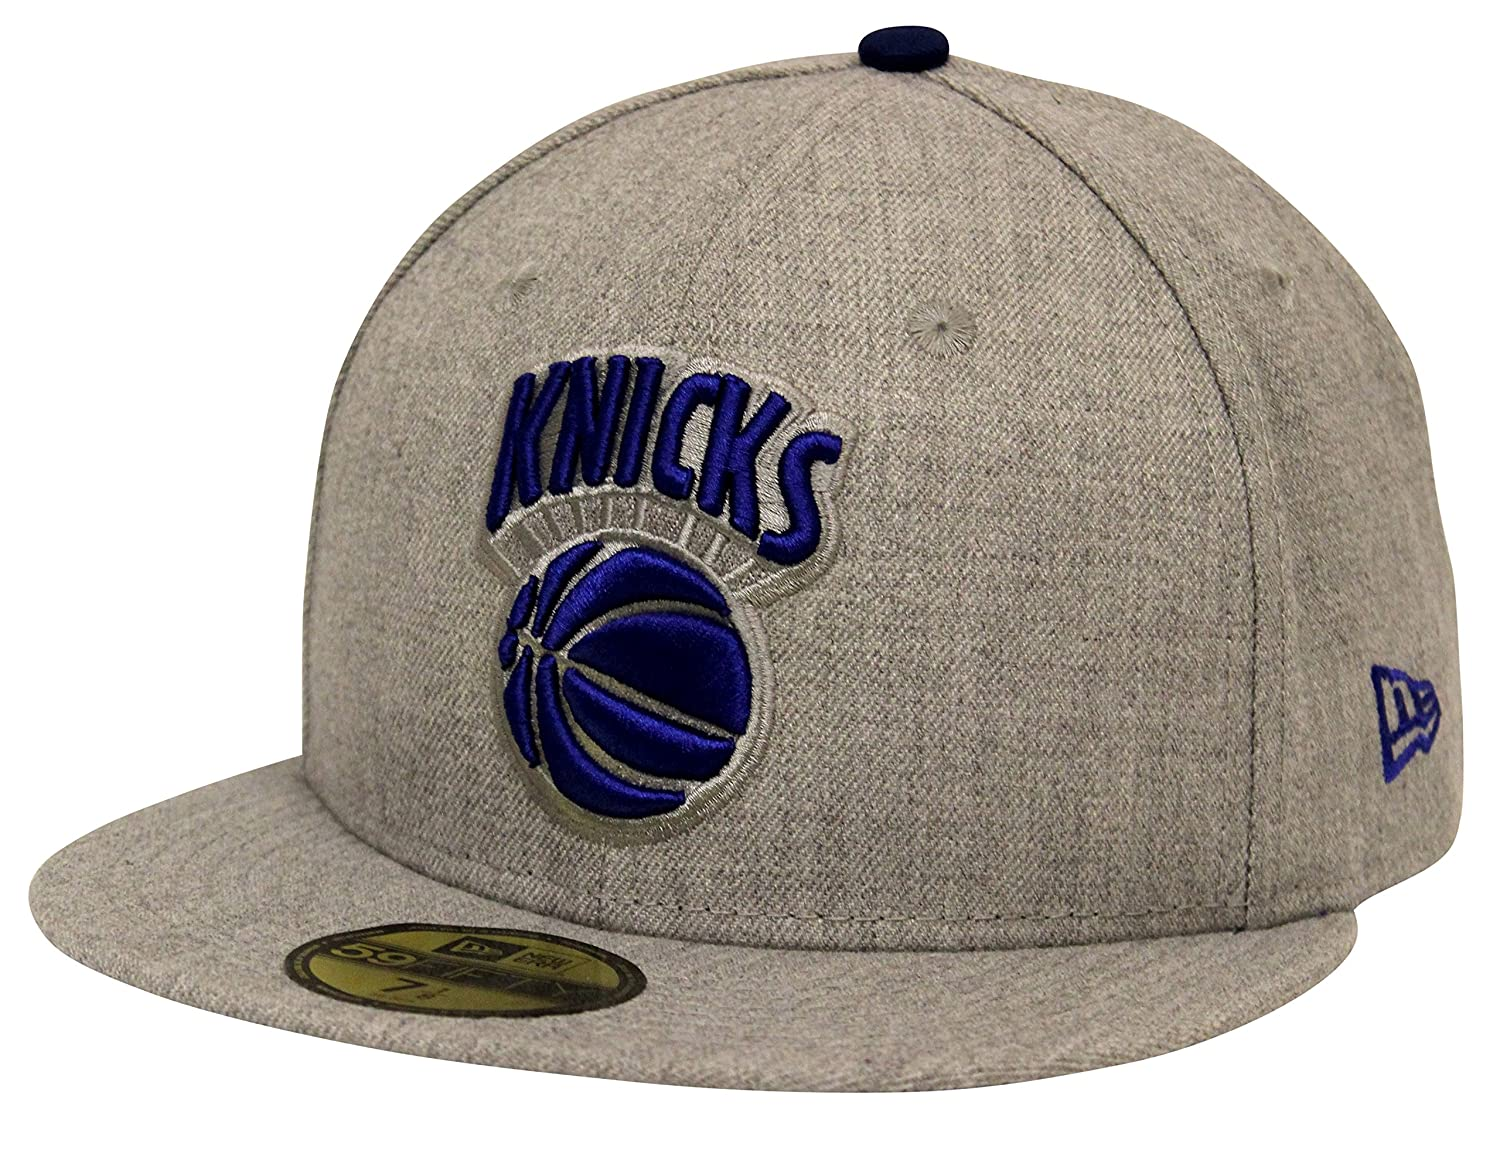 New Era 59Fifty Heather Gray Blue New York Knicks Fitted Cap (7 7 8) at  Amazon Men s Clothing store  0c153fcb42c